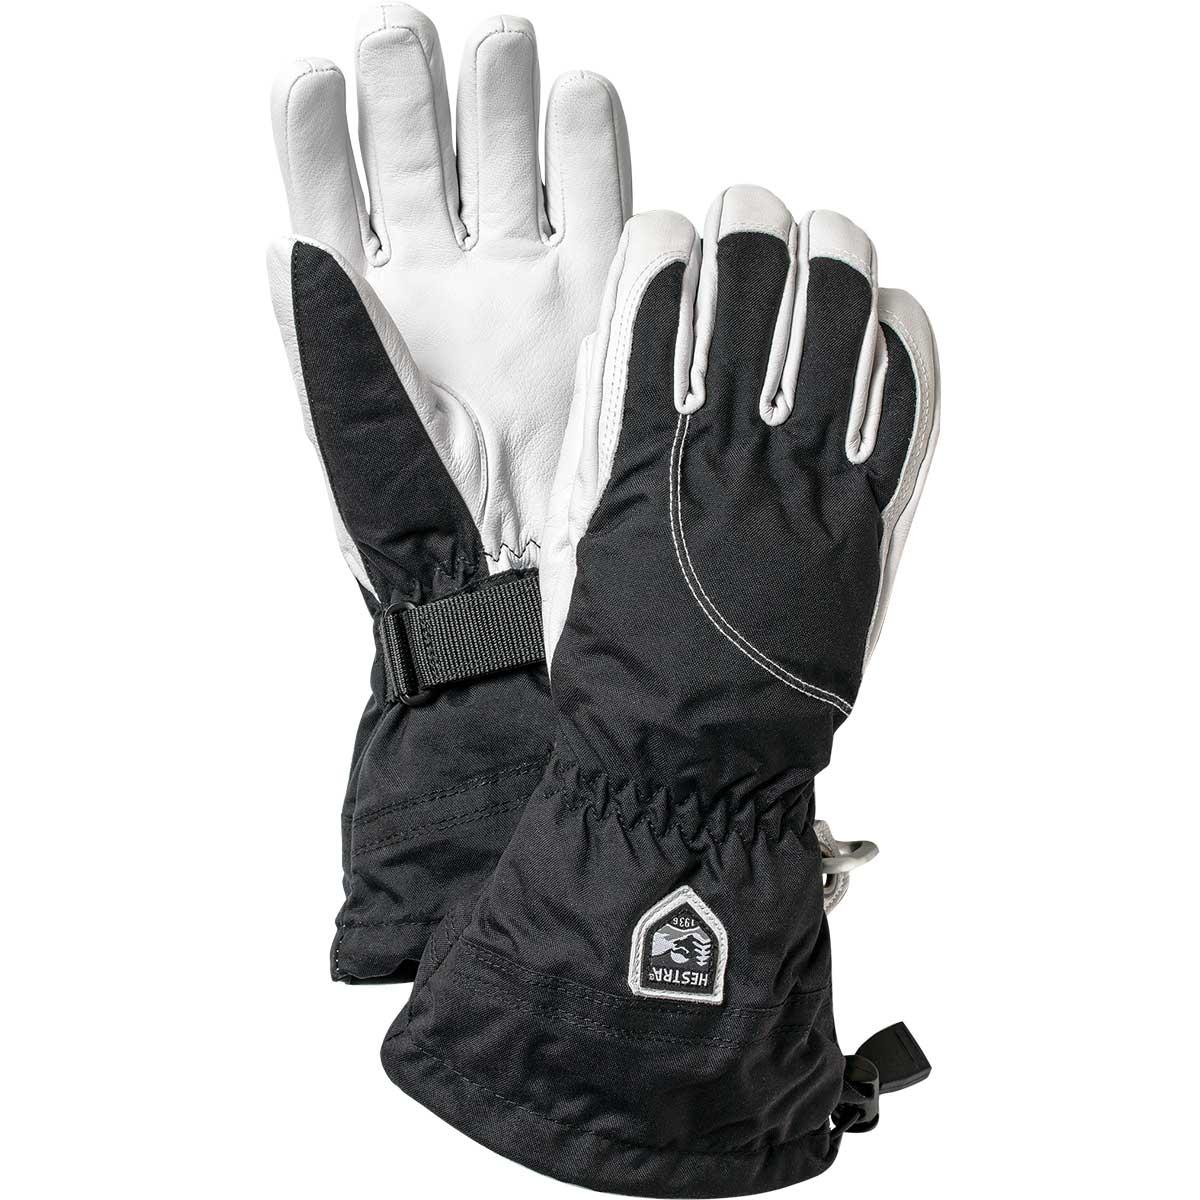 Hestra women's Heli Ski Glove in black and off white